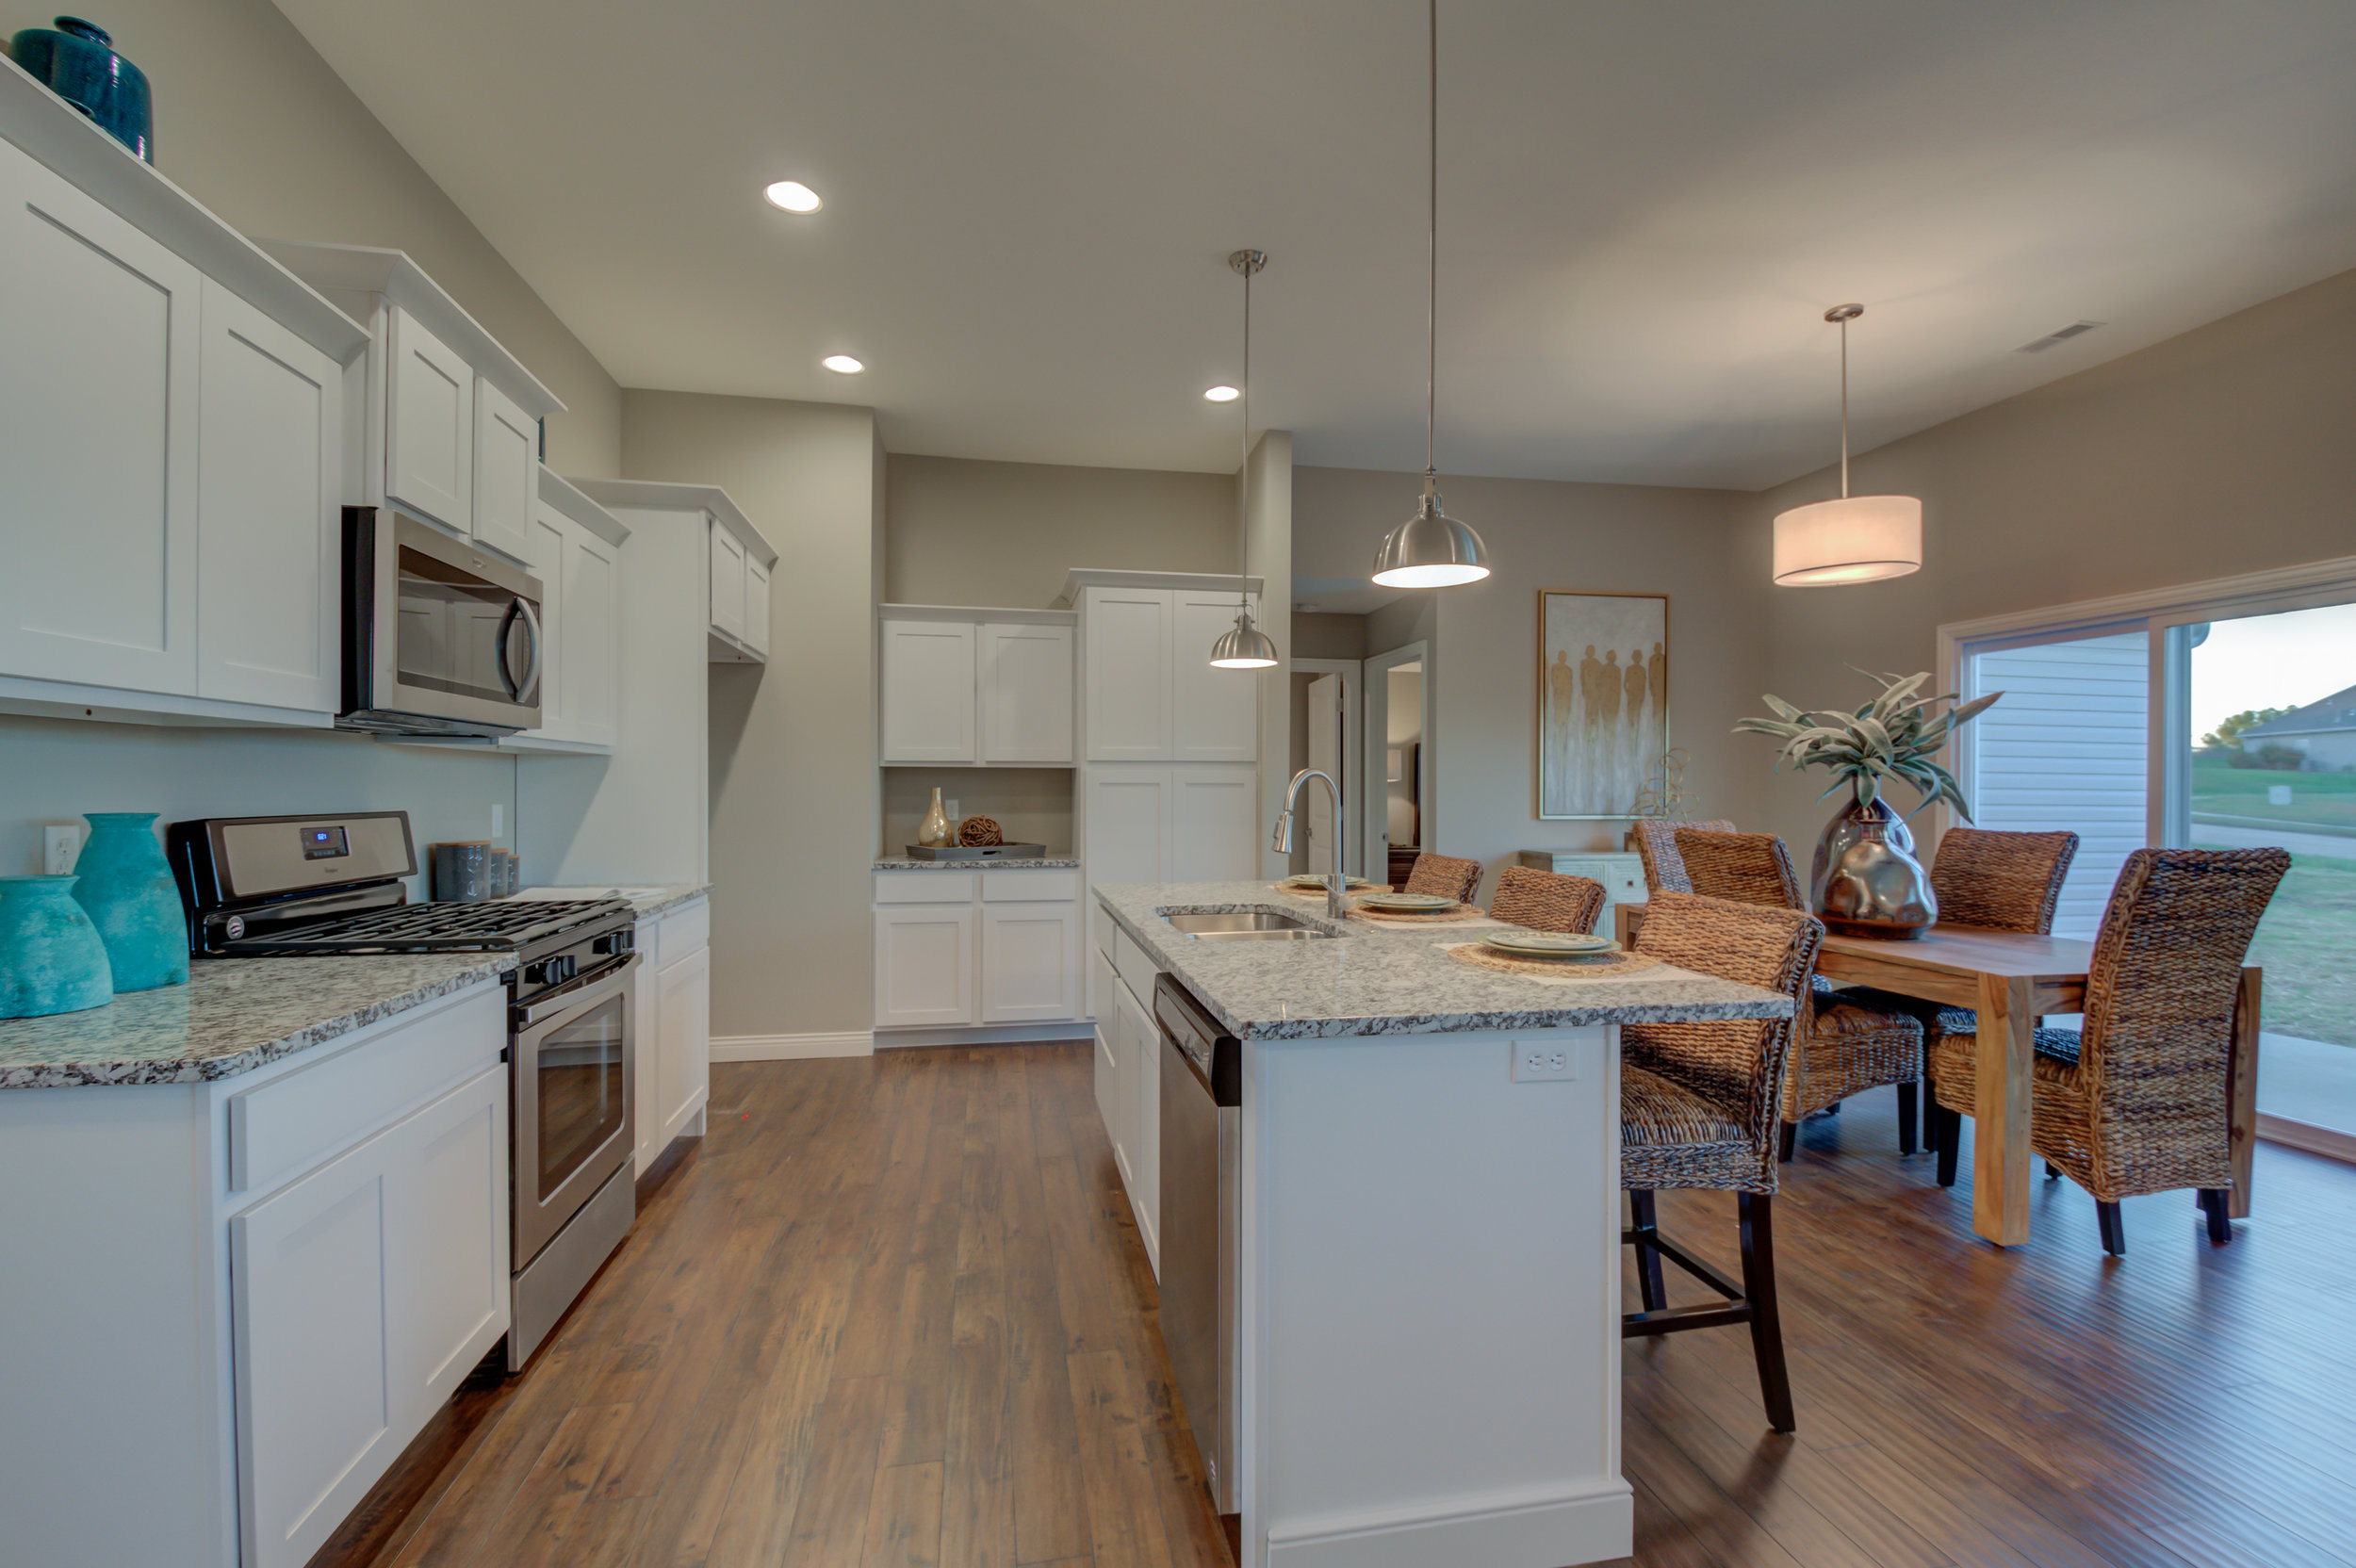 Kitchen_Island_Ashland_Misouri.jpg